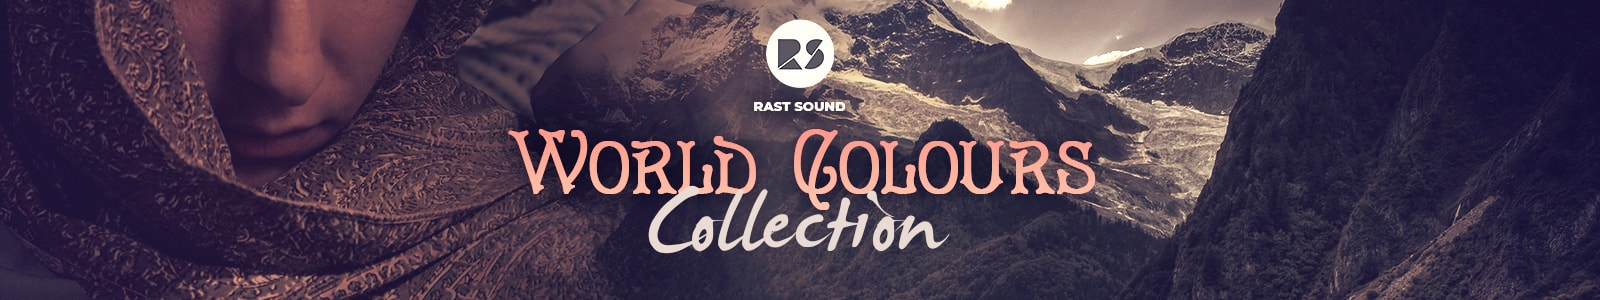 rast sound world colors collection